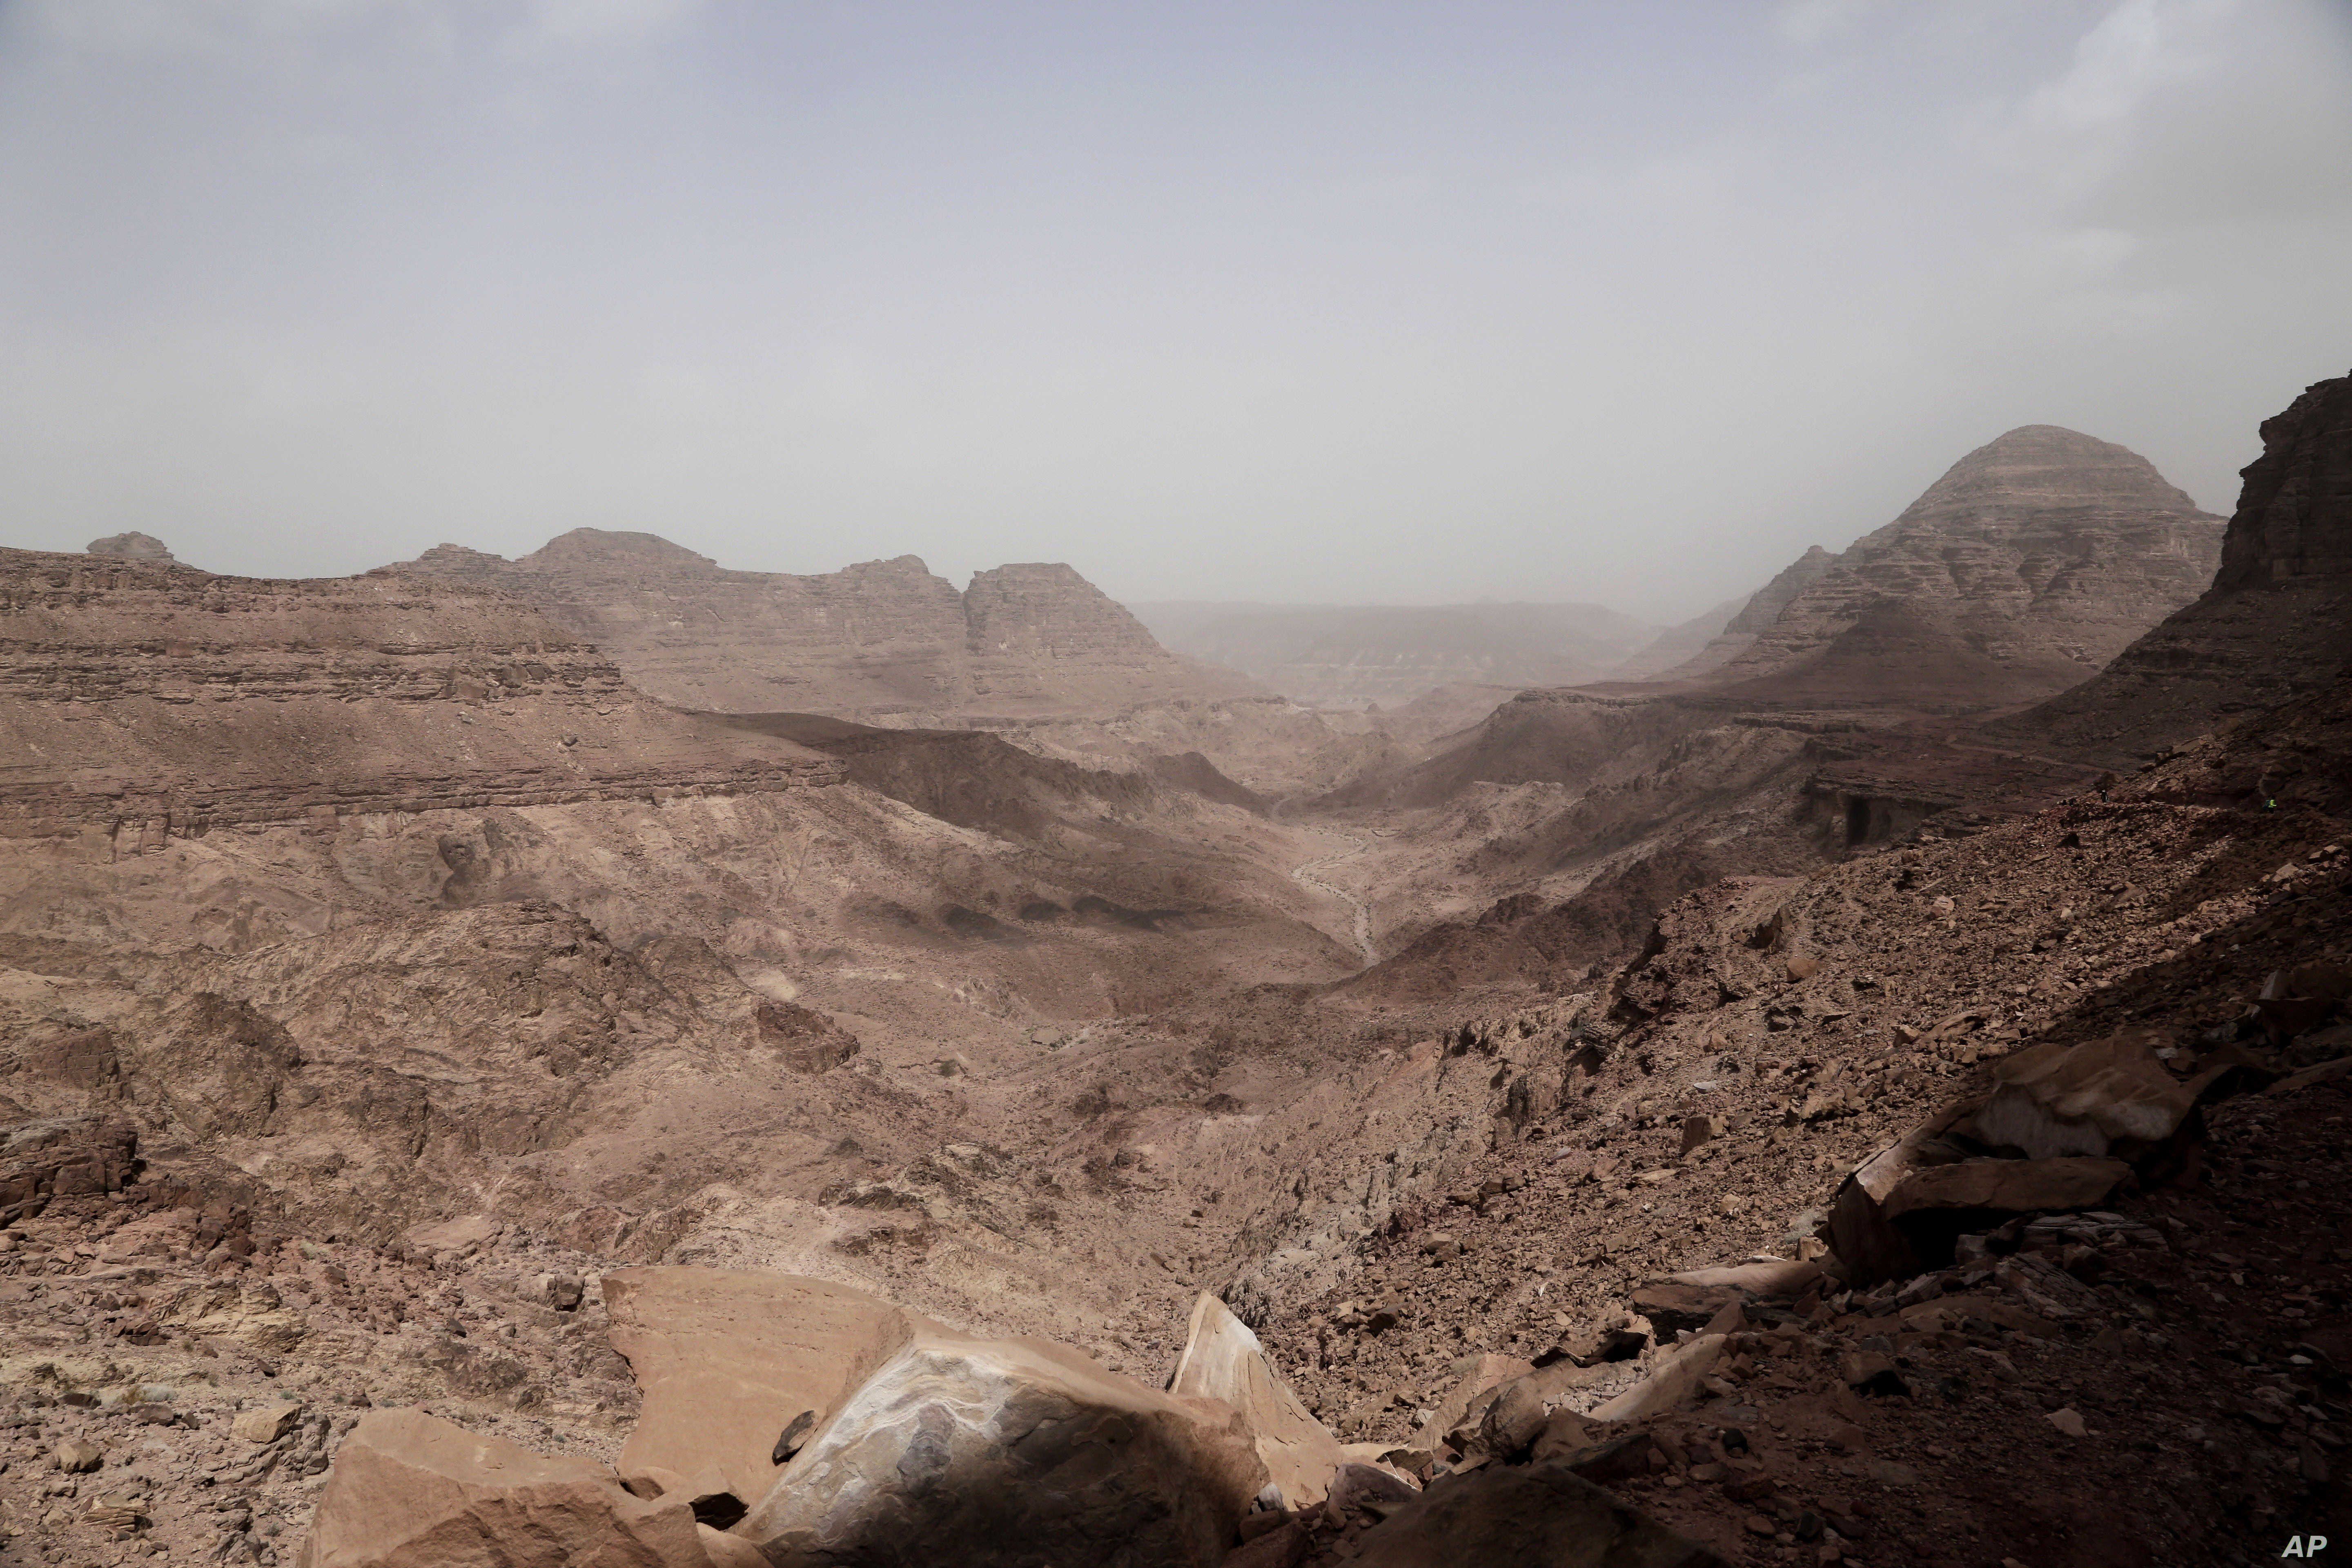 In a First, Bedouin Women Lead Tours in Egypt's Sinai